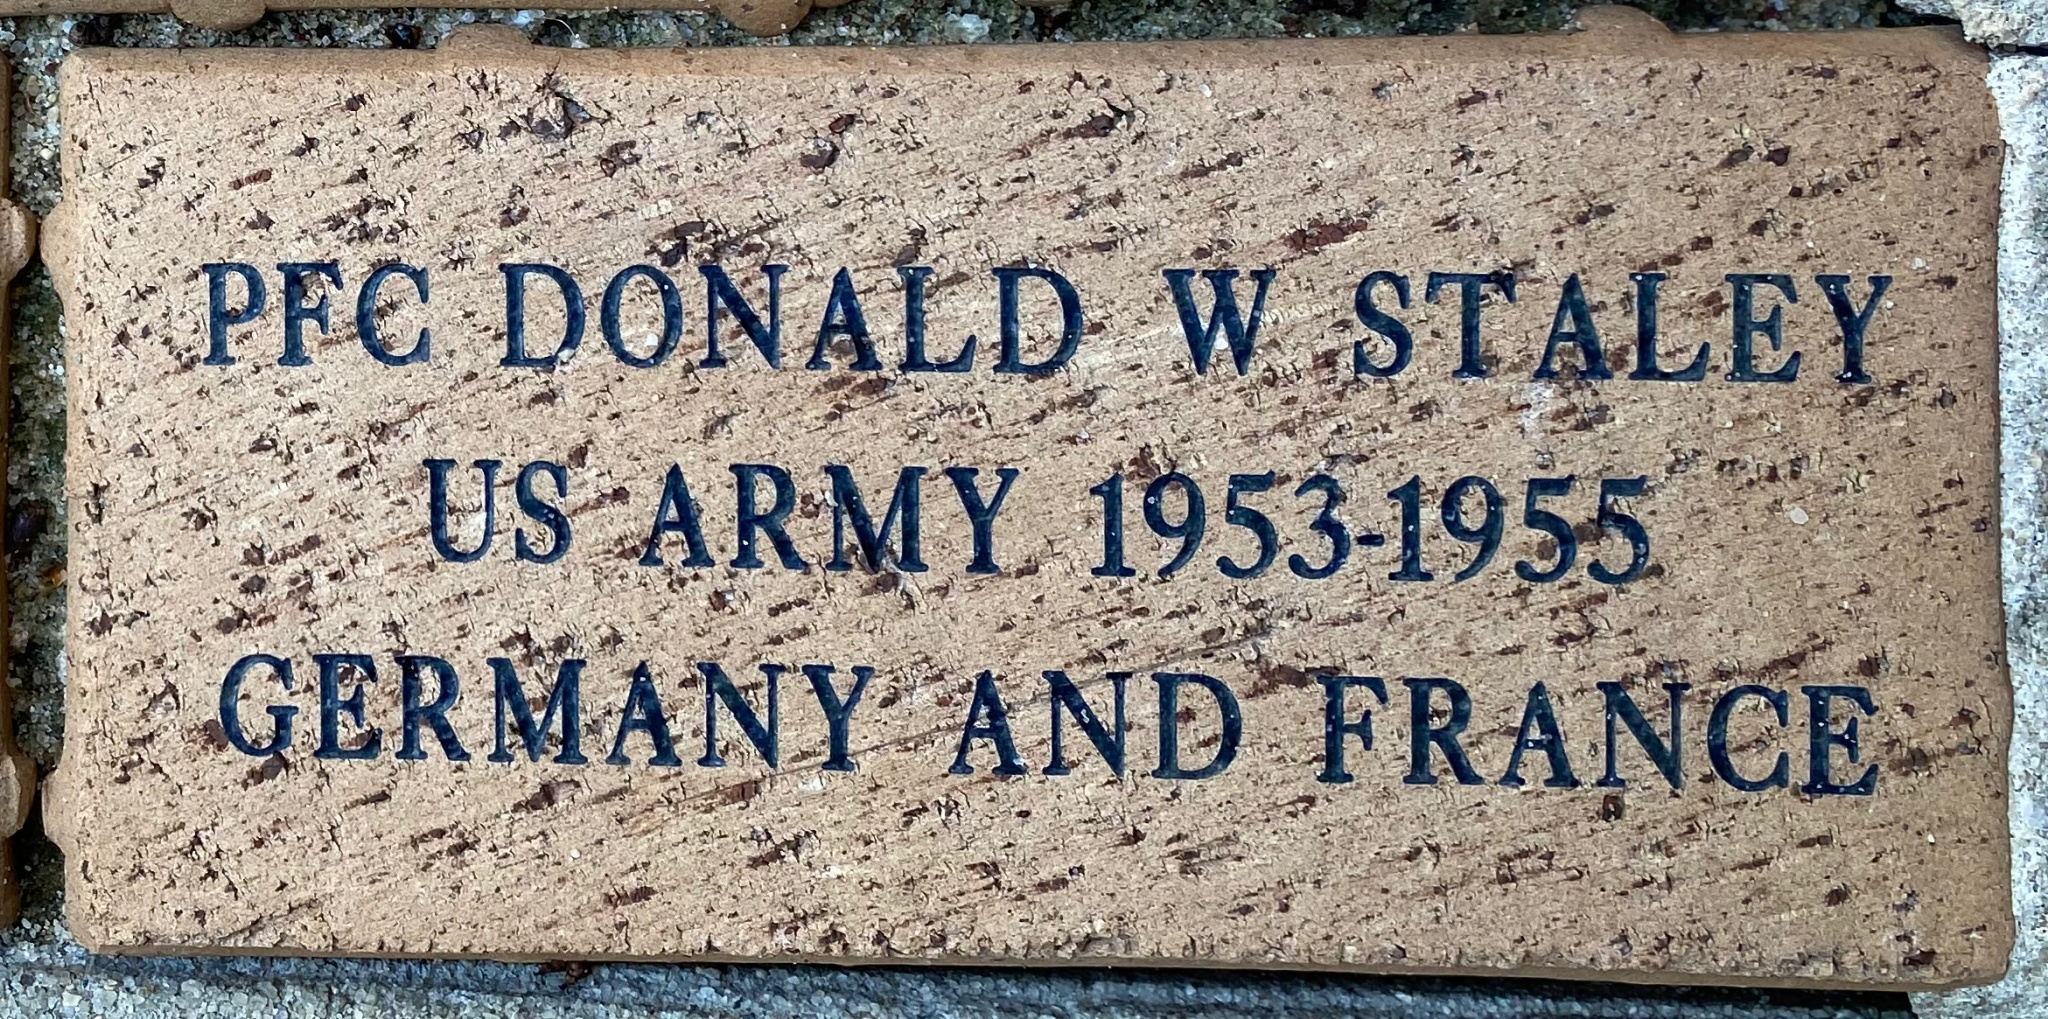 PFC DONALD W STALEY US ARMY 1953-1955 GERMANY AND FRANCE